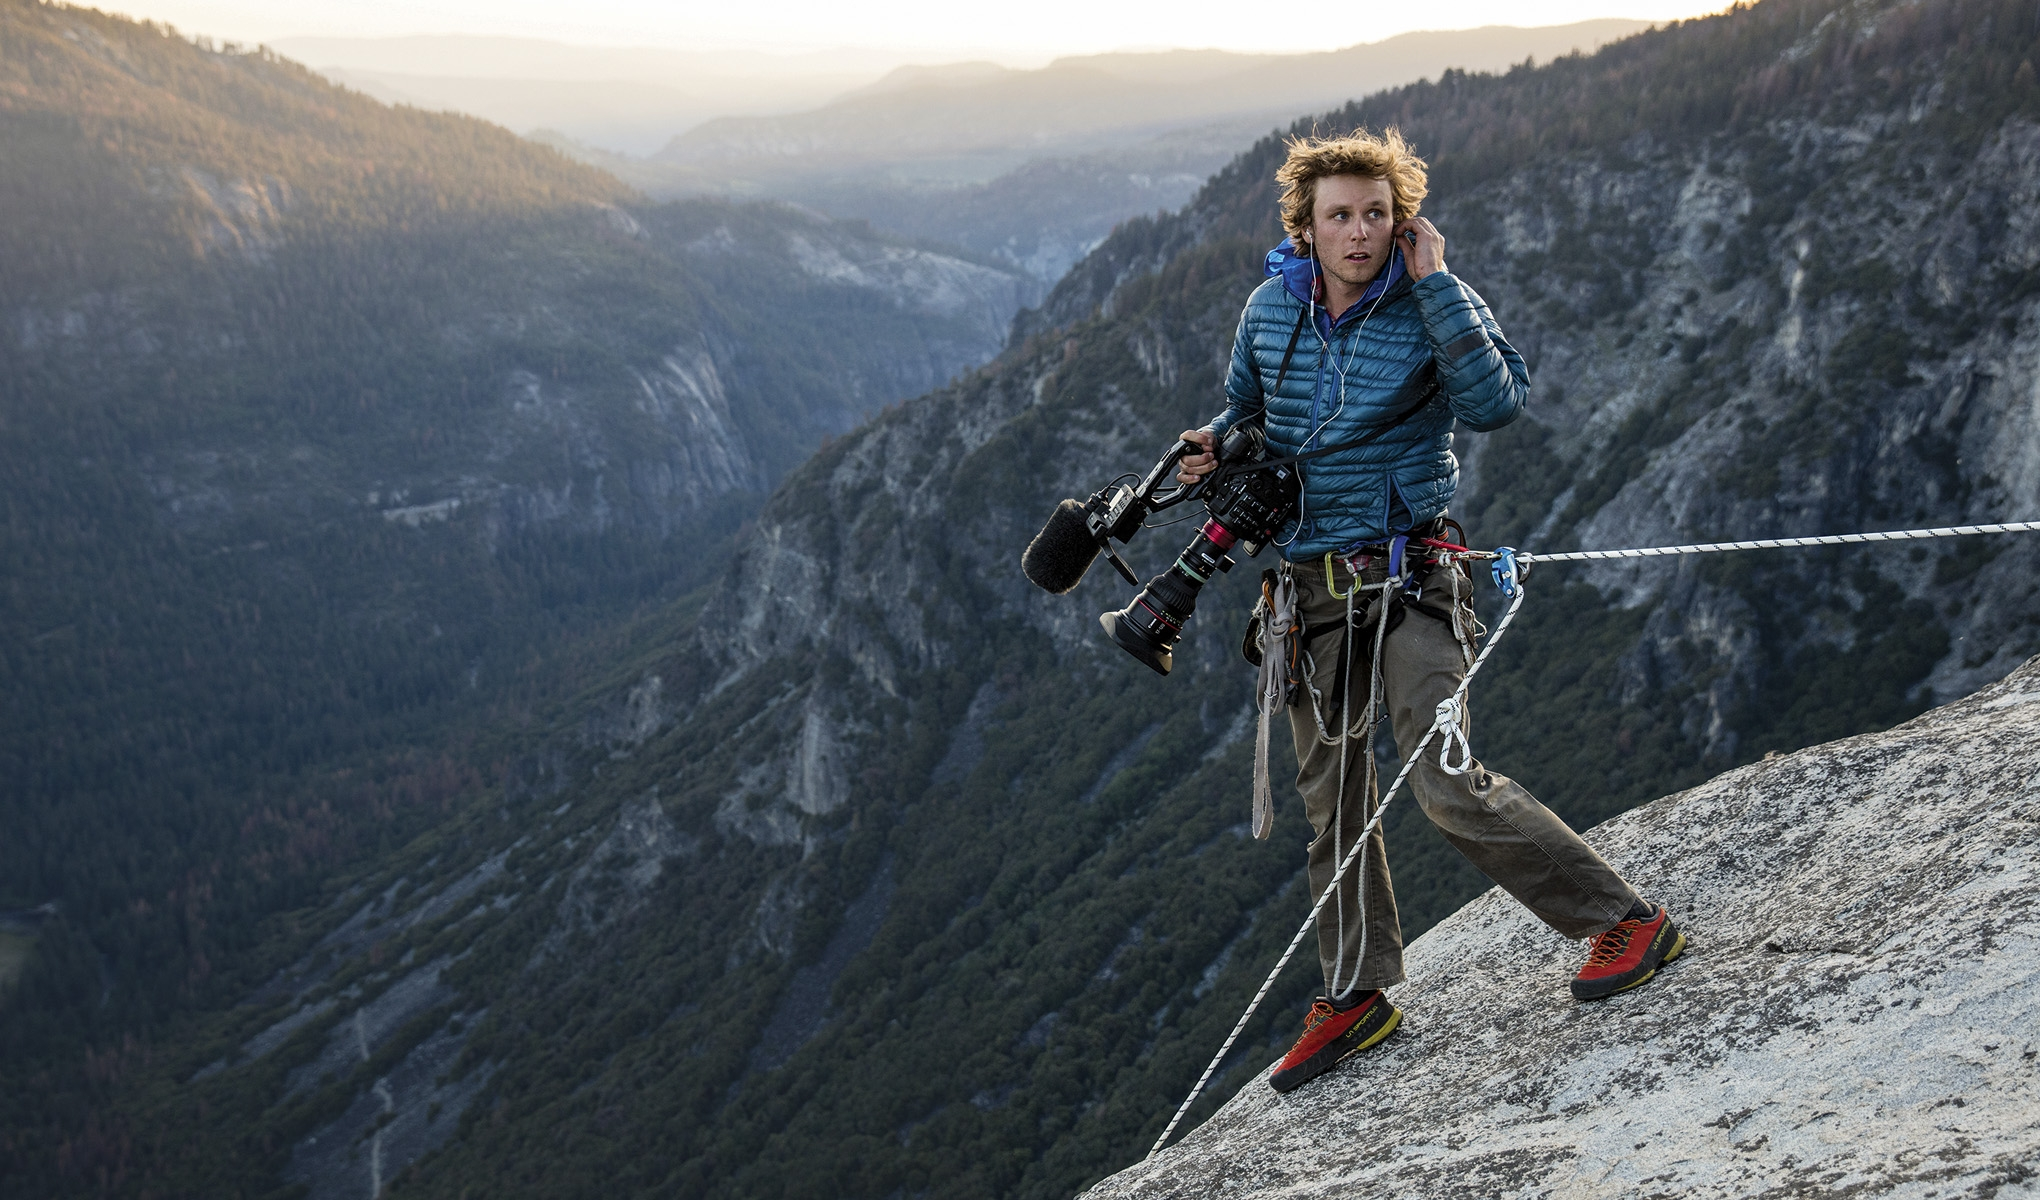 Sammuel Crossley holding a camera while strapped into a harness on top of a mountain